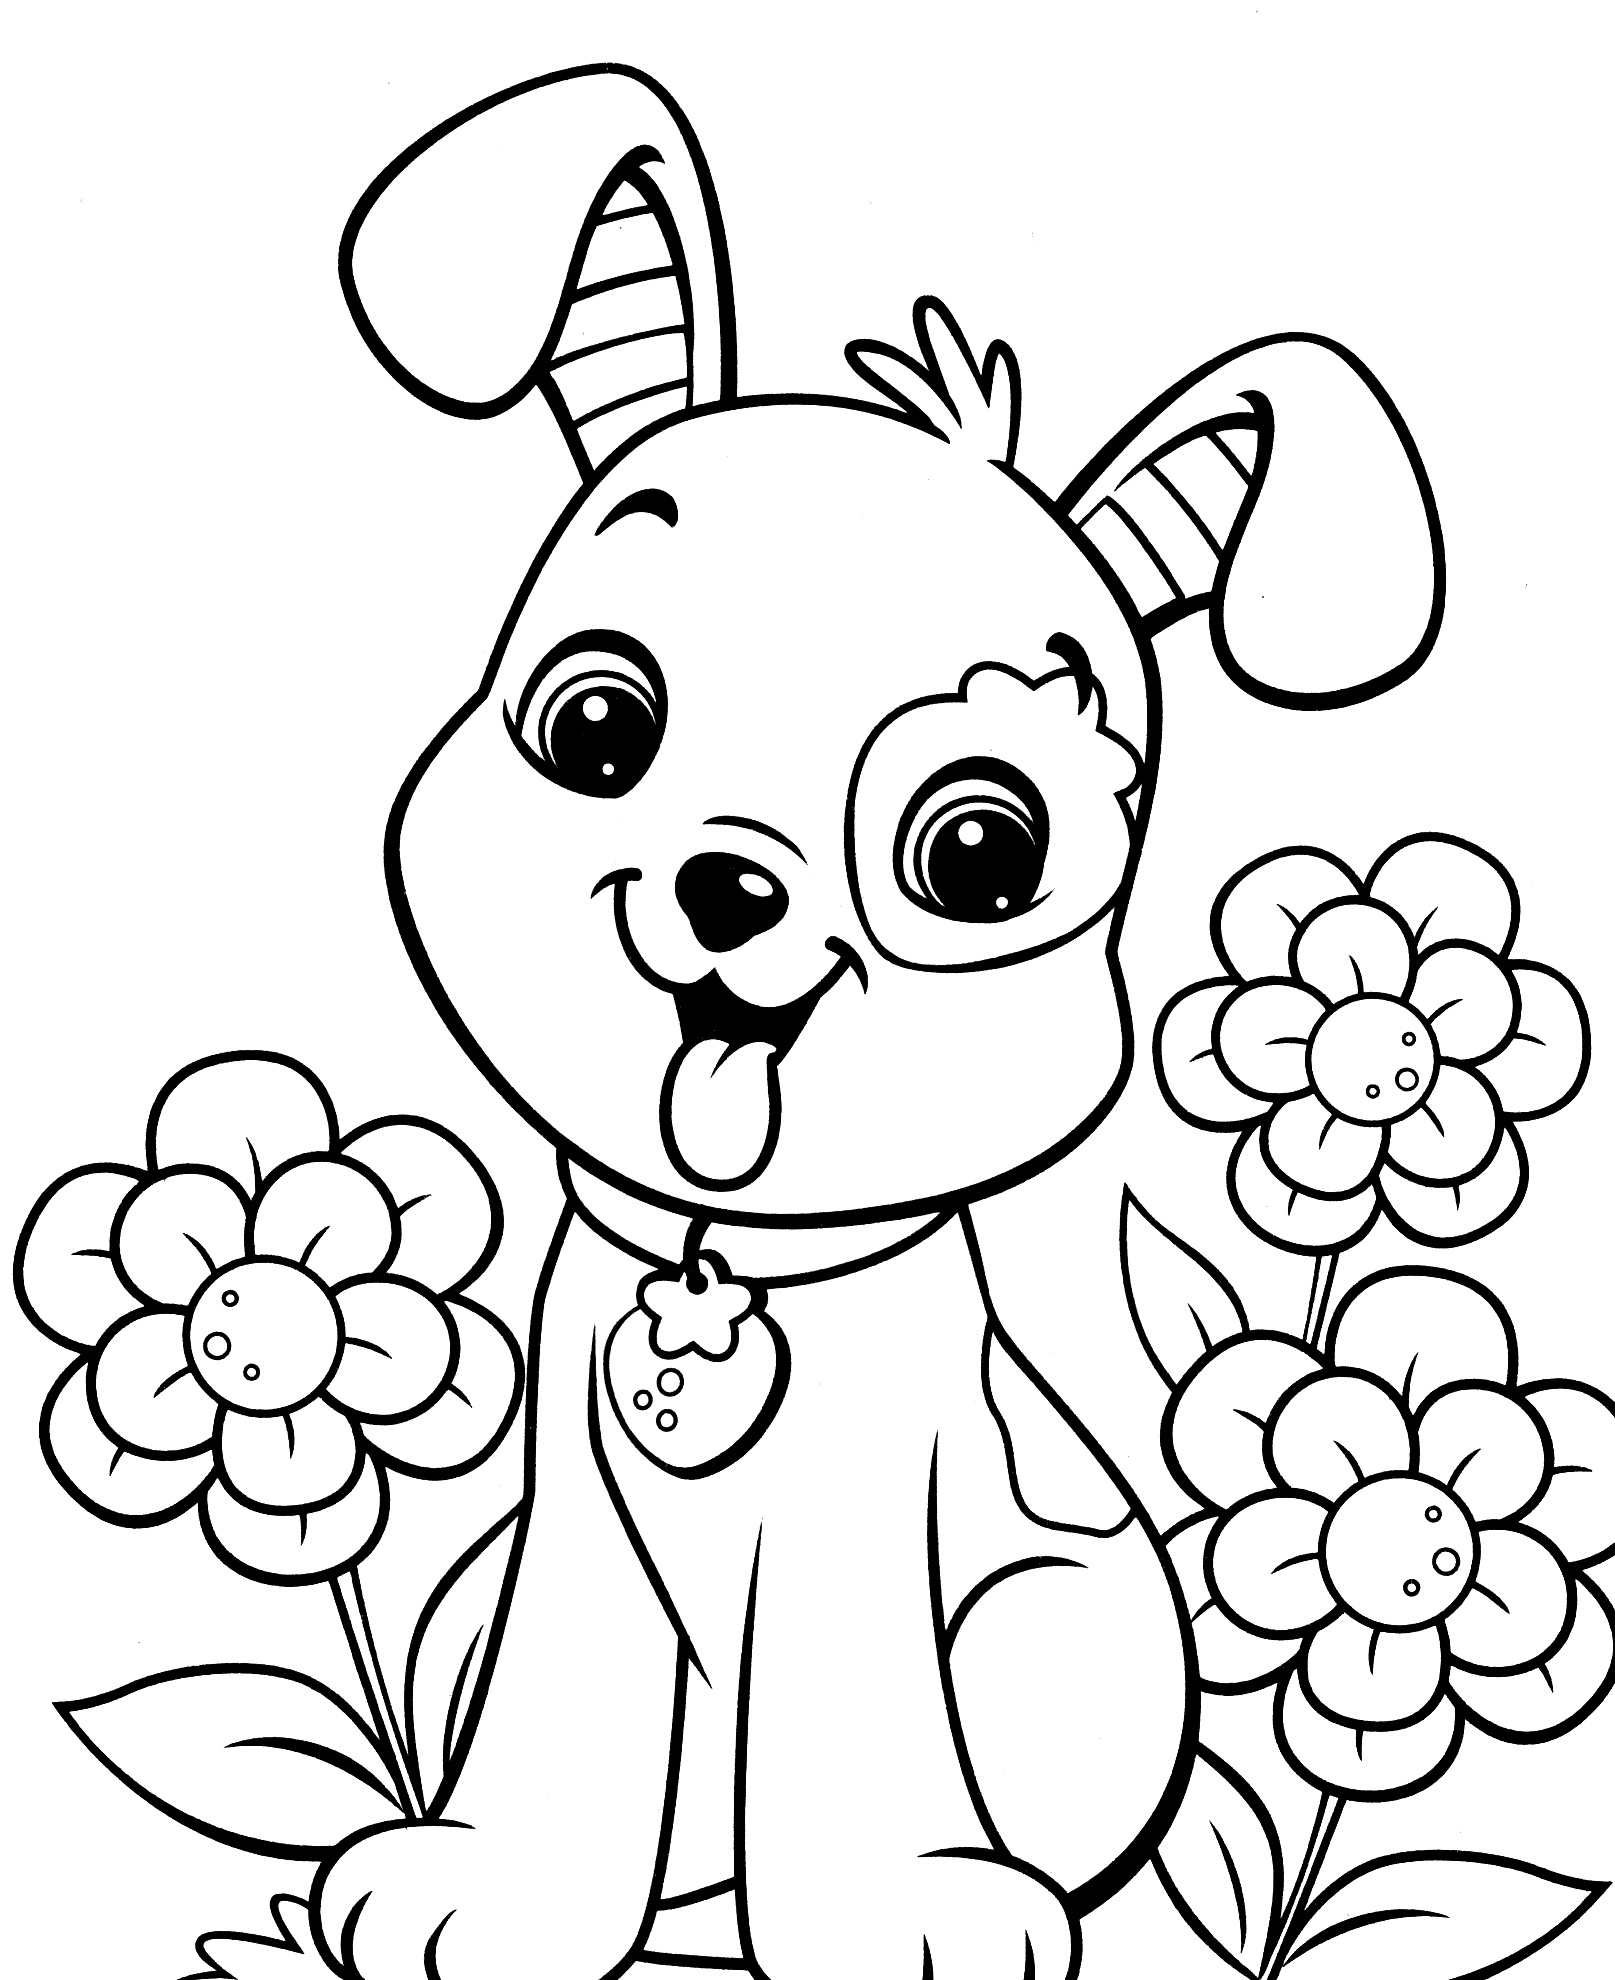 Get free high quality hd wallpapers puppy coloring pages to print for kids